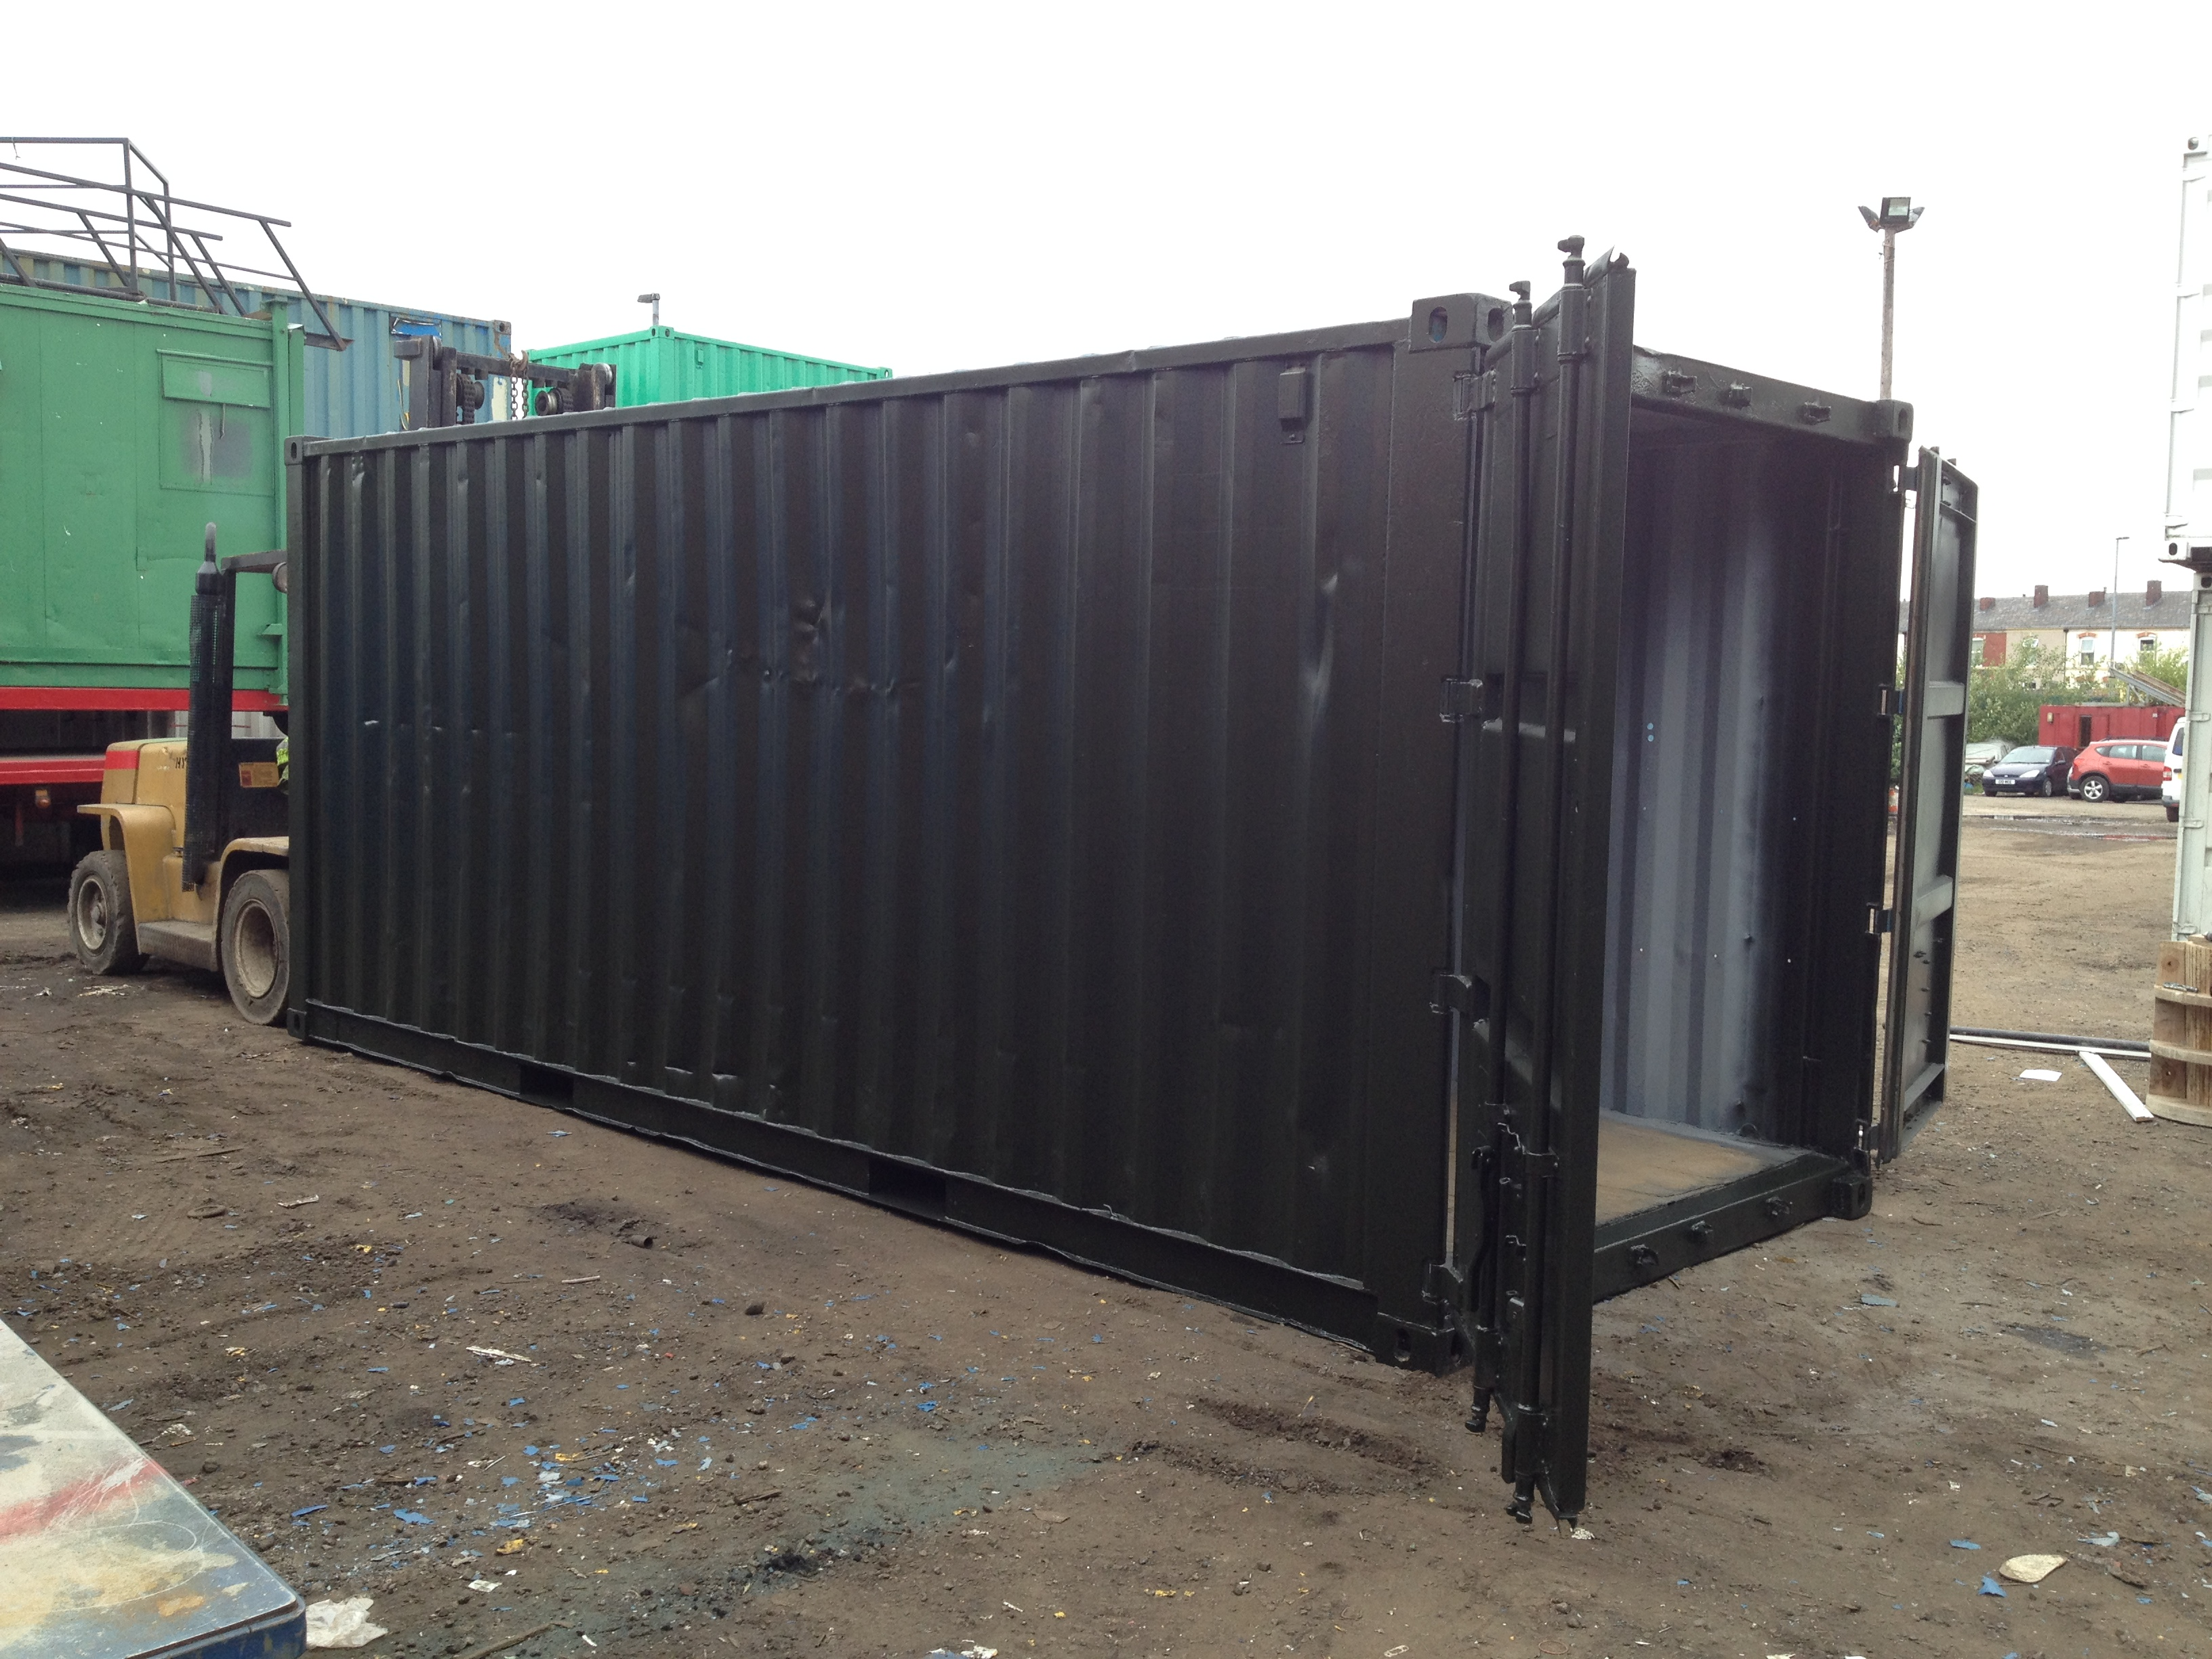 20ft x 8ft Green Used Storage Container | www ...